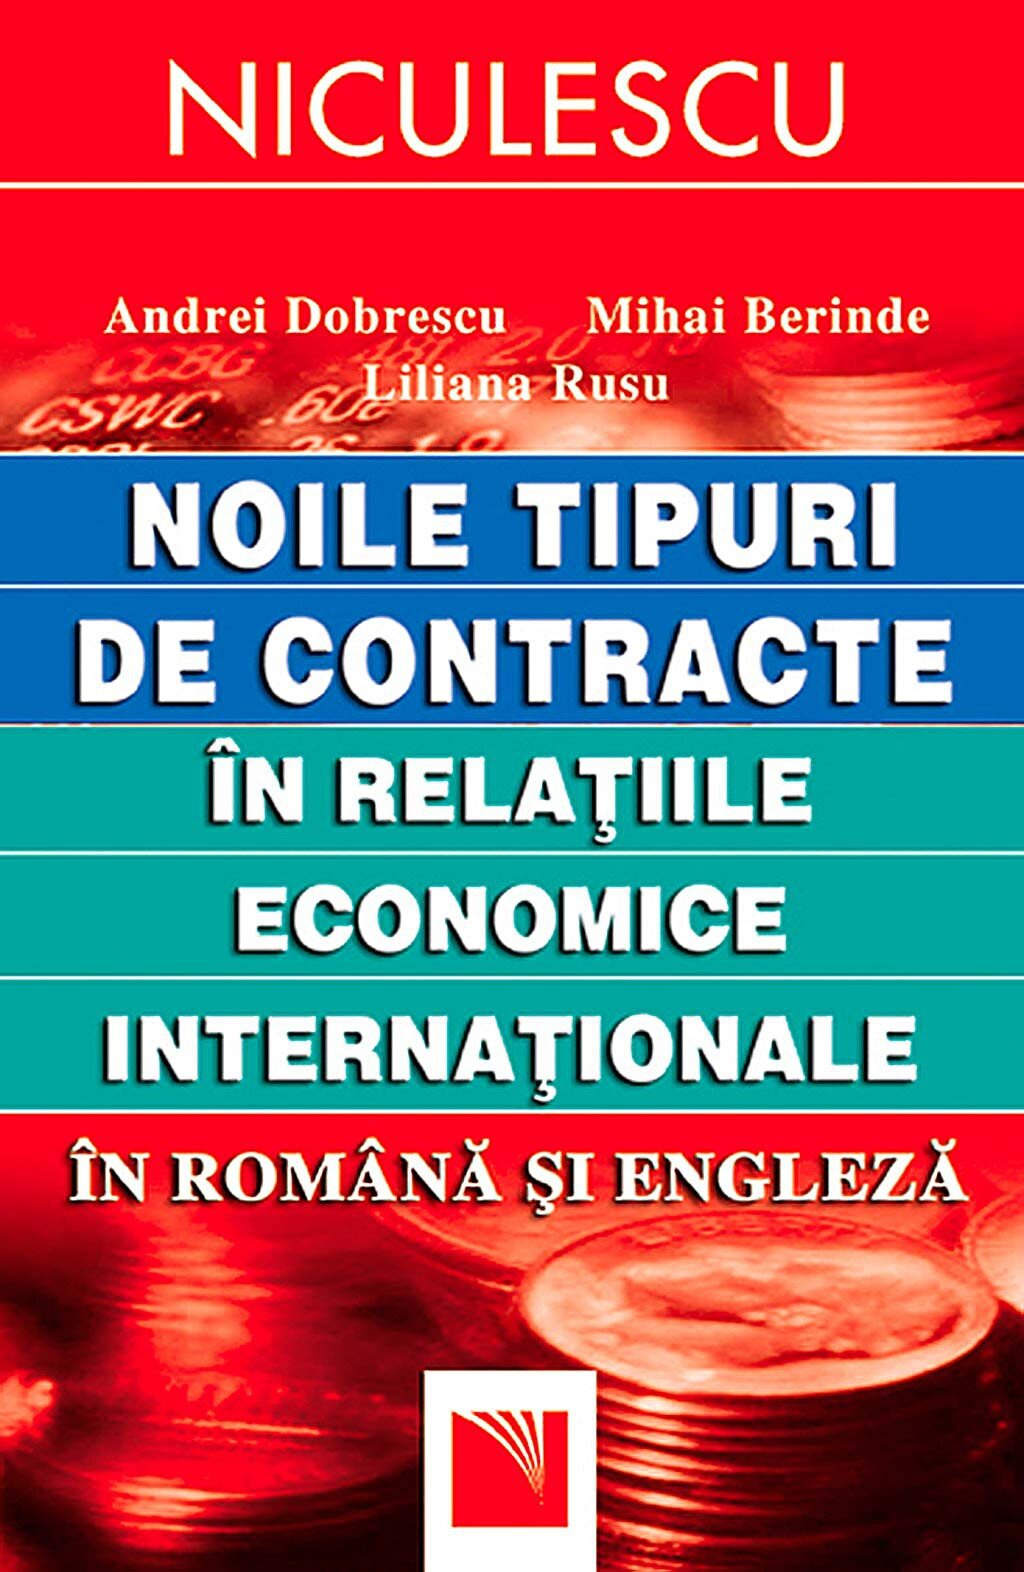 Noile tipuri de contracte in relatiile economice internationale in romana si engleza (eBook)